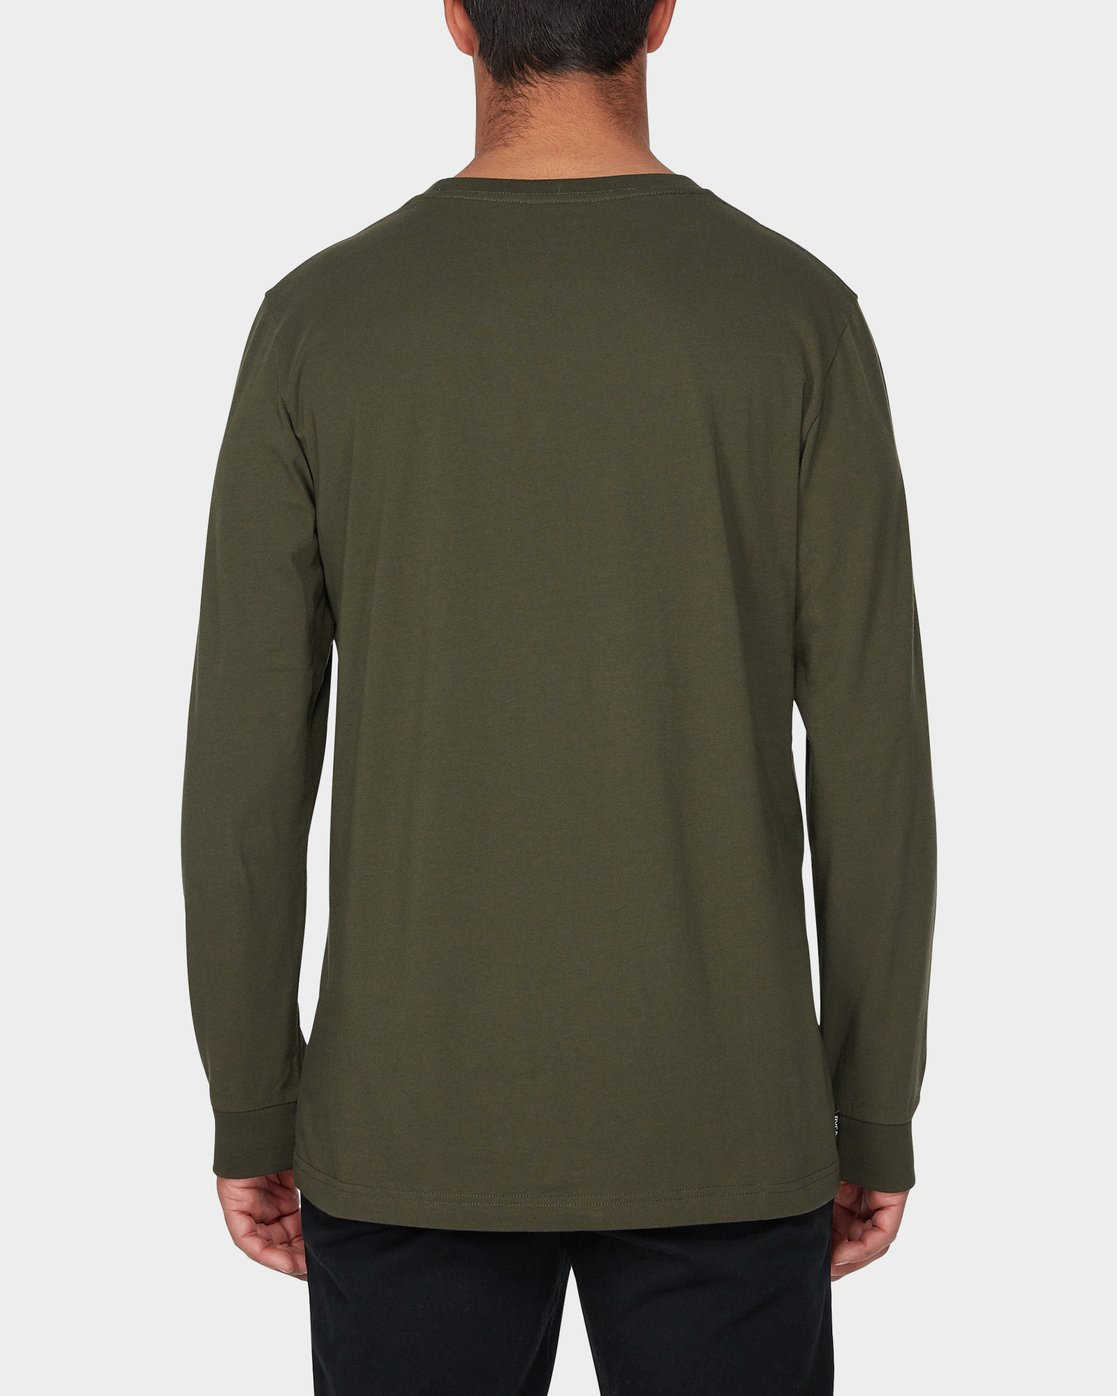 2 RVCA Keyliner Long Sleeve T-Shirt  R193094 RVCA